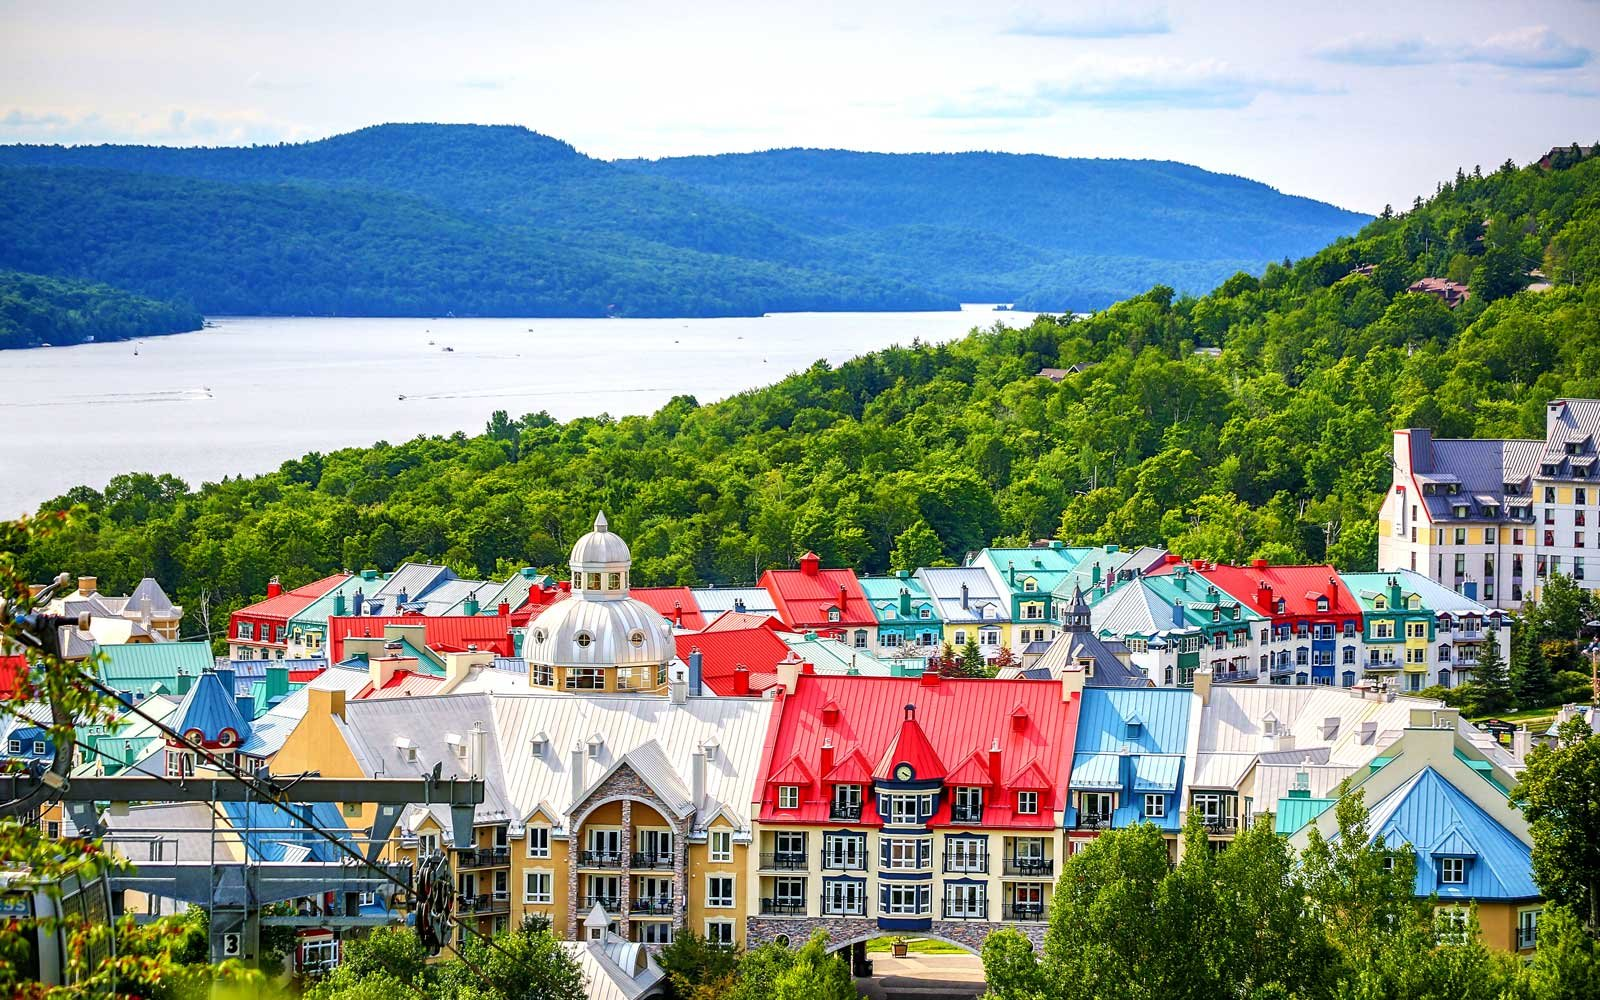 Beautiful Mont tremblant village, lake and mountains in Quebec, Canada